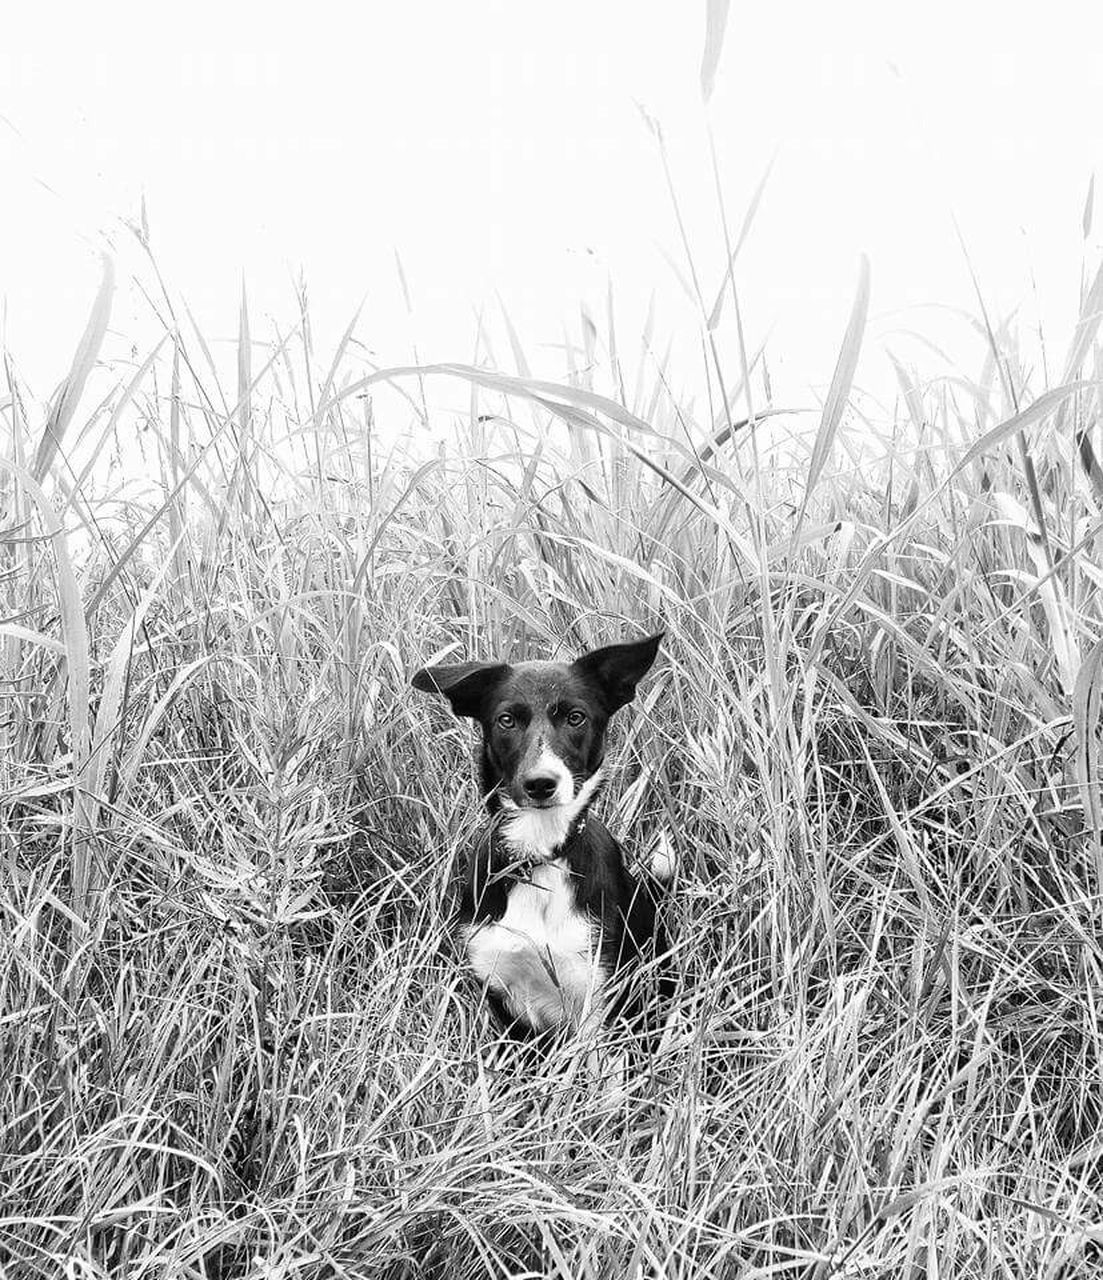 domestic animals, animal themes, mammal, pets, grass, one animal, dog, outdoors, looking at camera, portrait, field, day, alertness, no people, nature, sitting